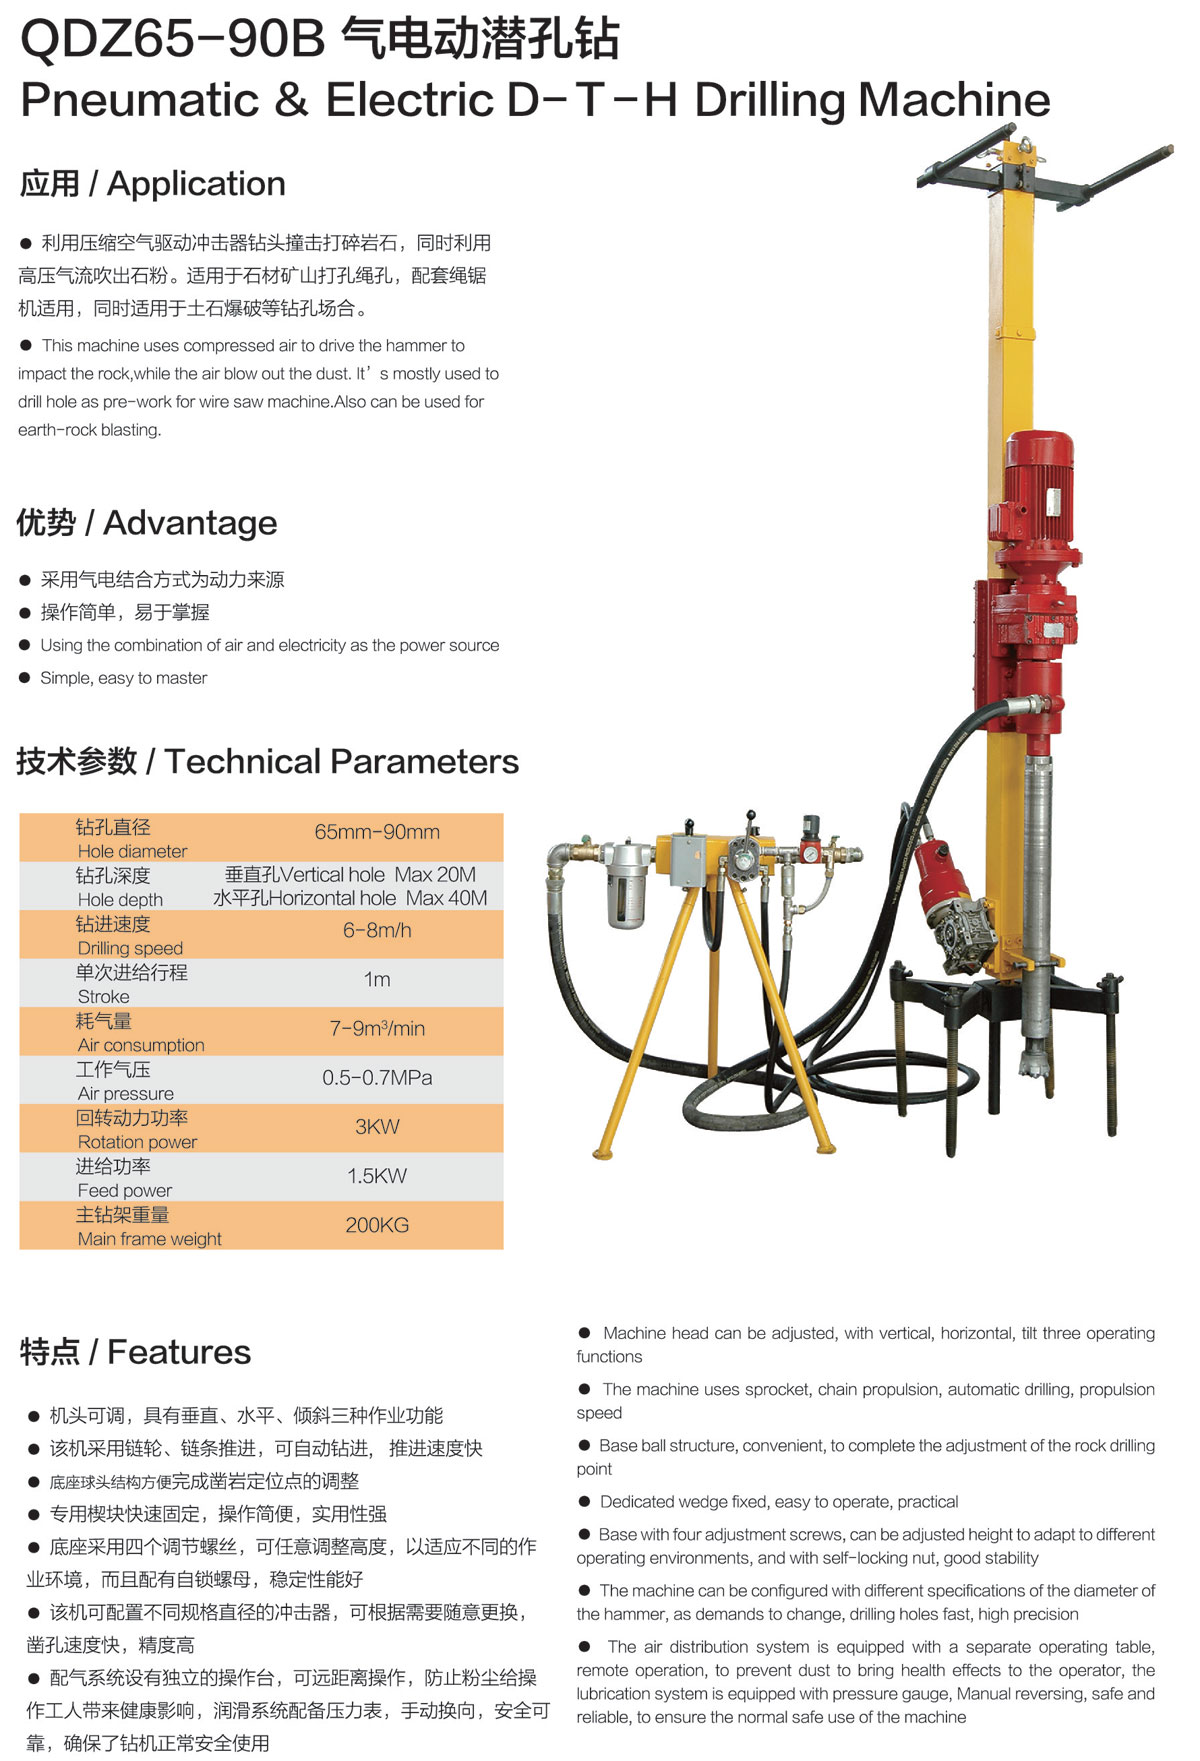 Pneumatic & Electric D-T-H Drilling Machine